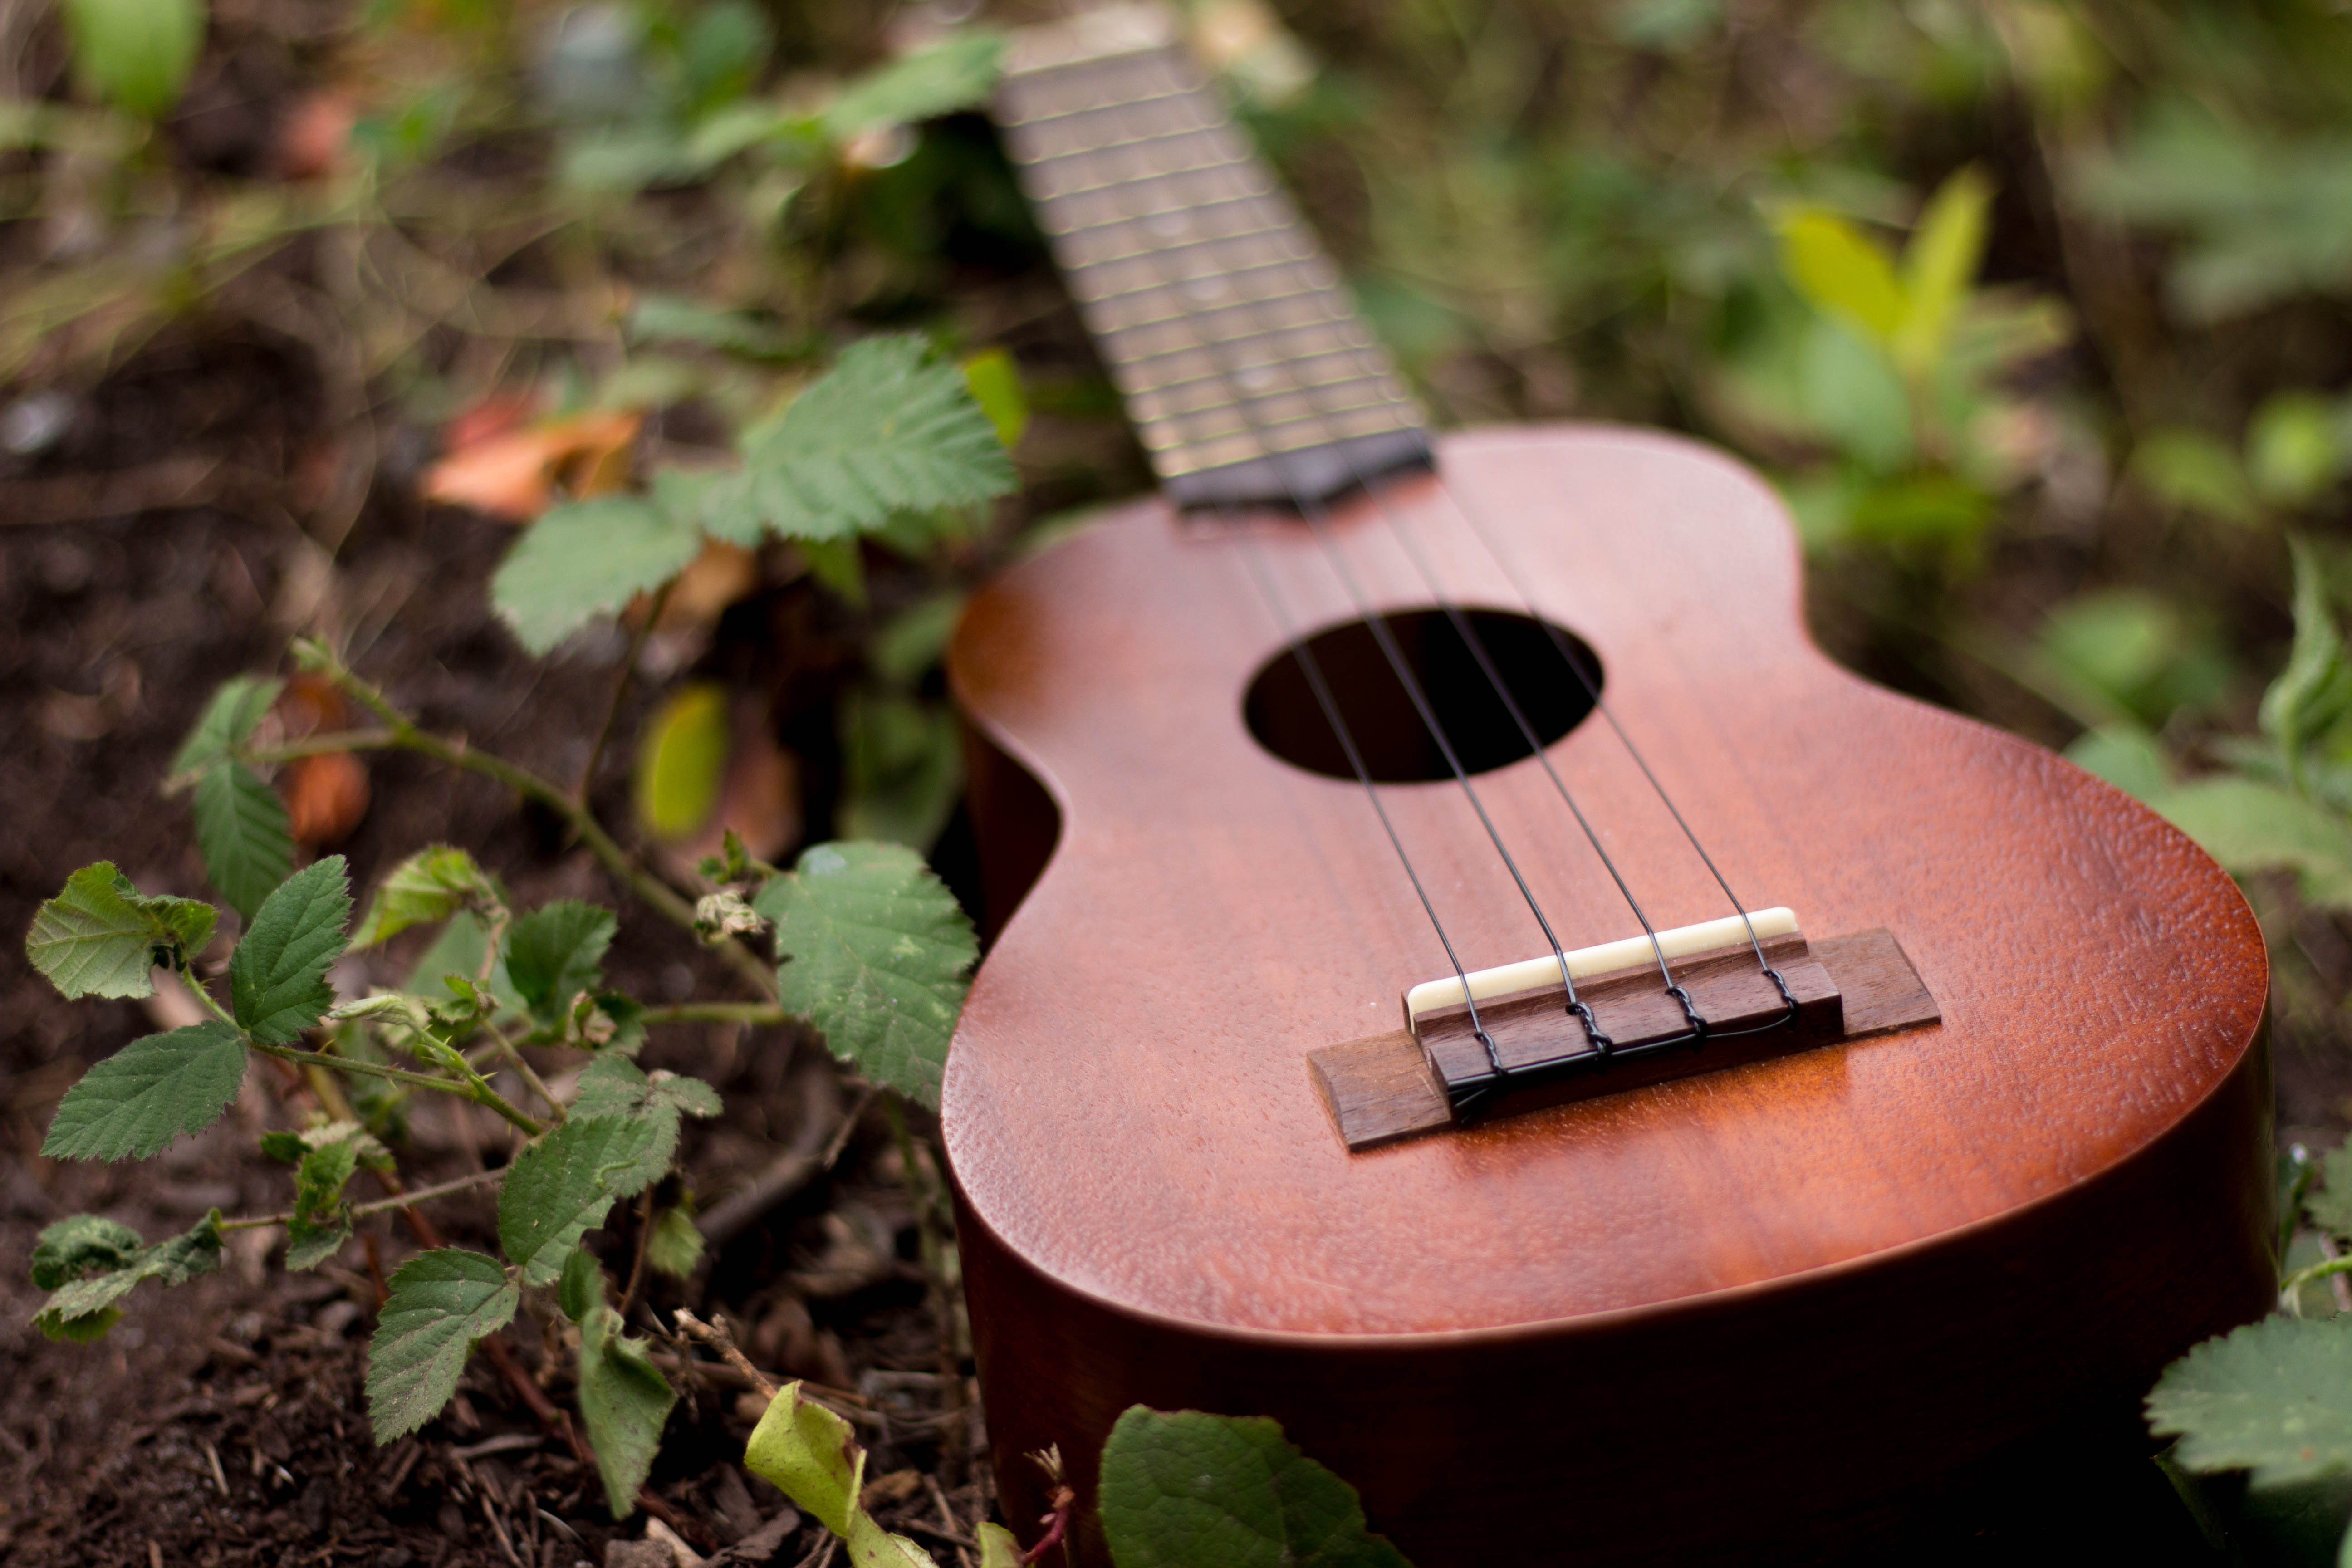 Ukulele with dark wood on ground surrounded by dirt and leaves